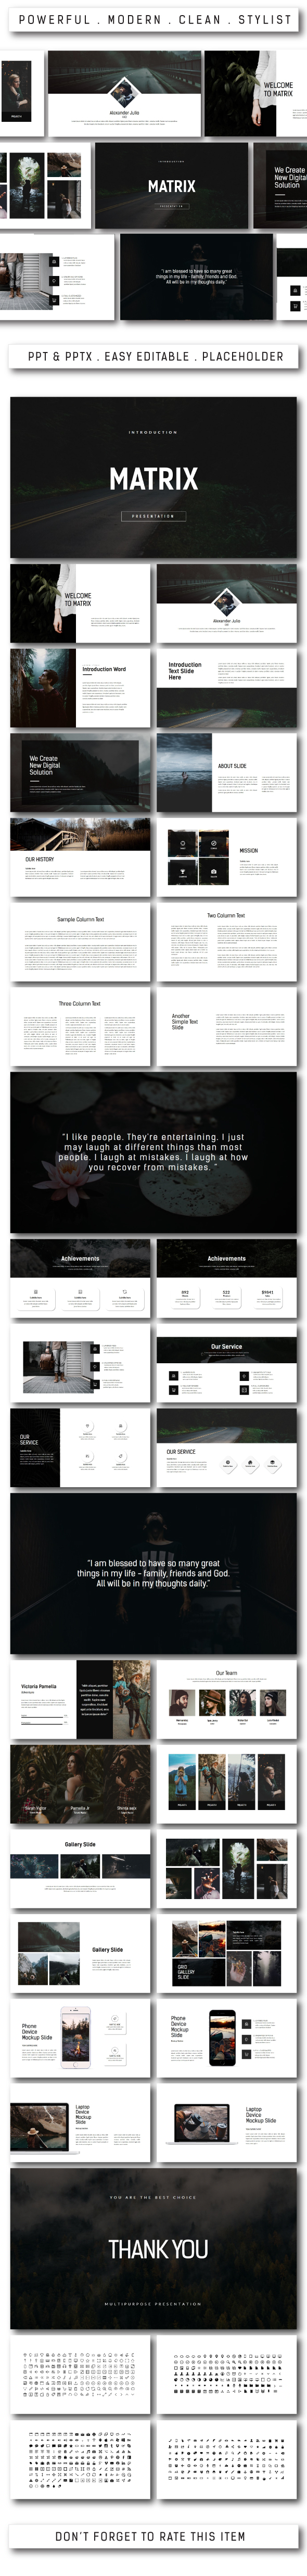 Matrix Multipurpose Powerpoint - PowerPoint Templates Presentation Templates